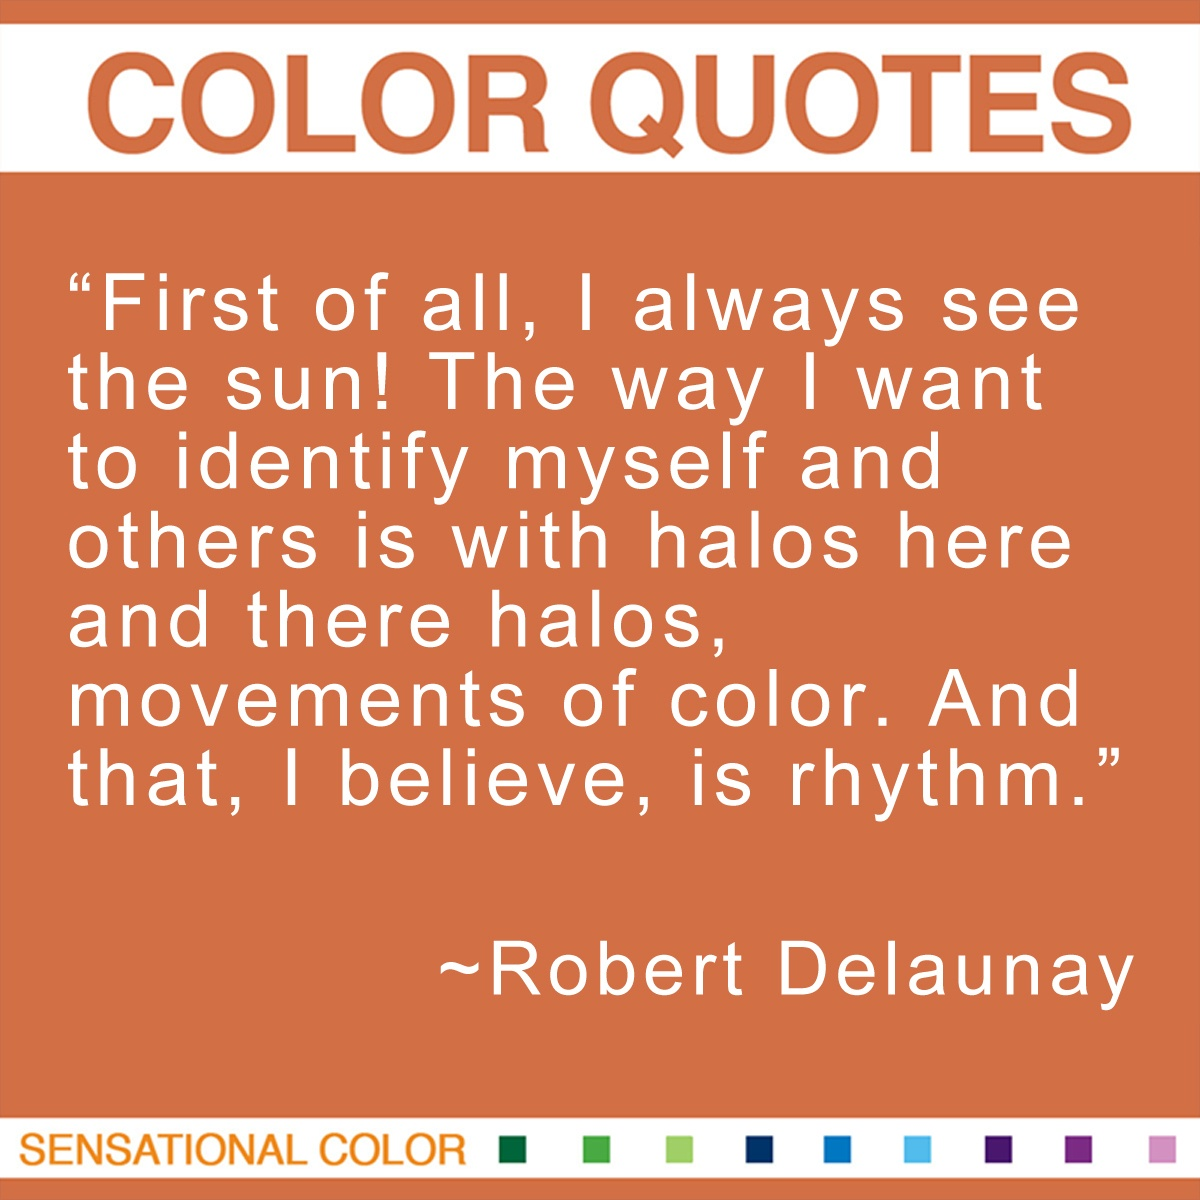 """First of all, I always see the sun! The way I want to identify myself and others is with halos here and there halos, movements of color. And that, I believe, is rhythm."" - Robert Delaunay"